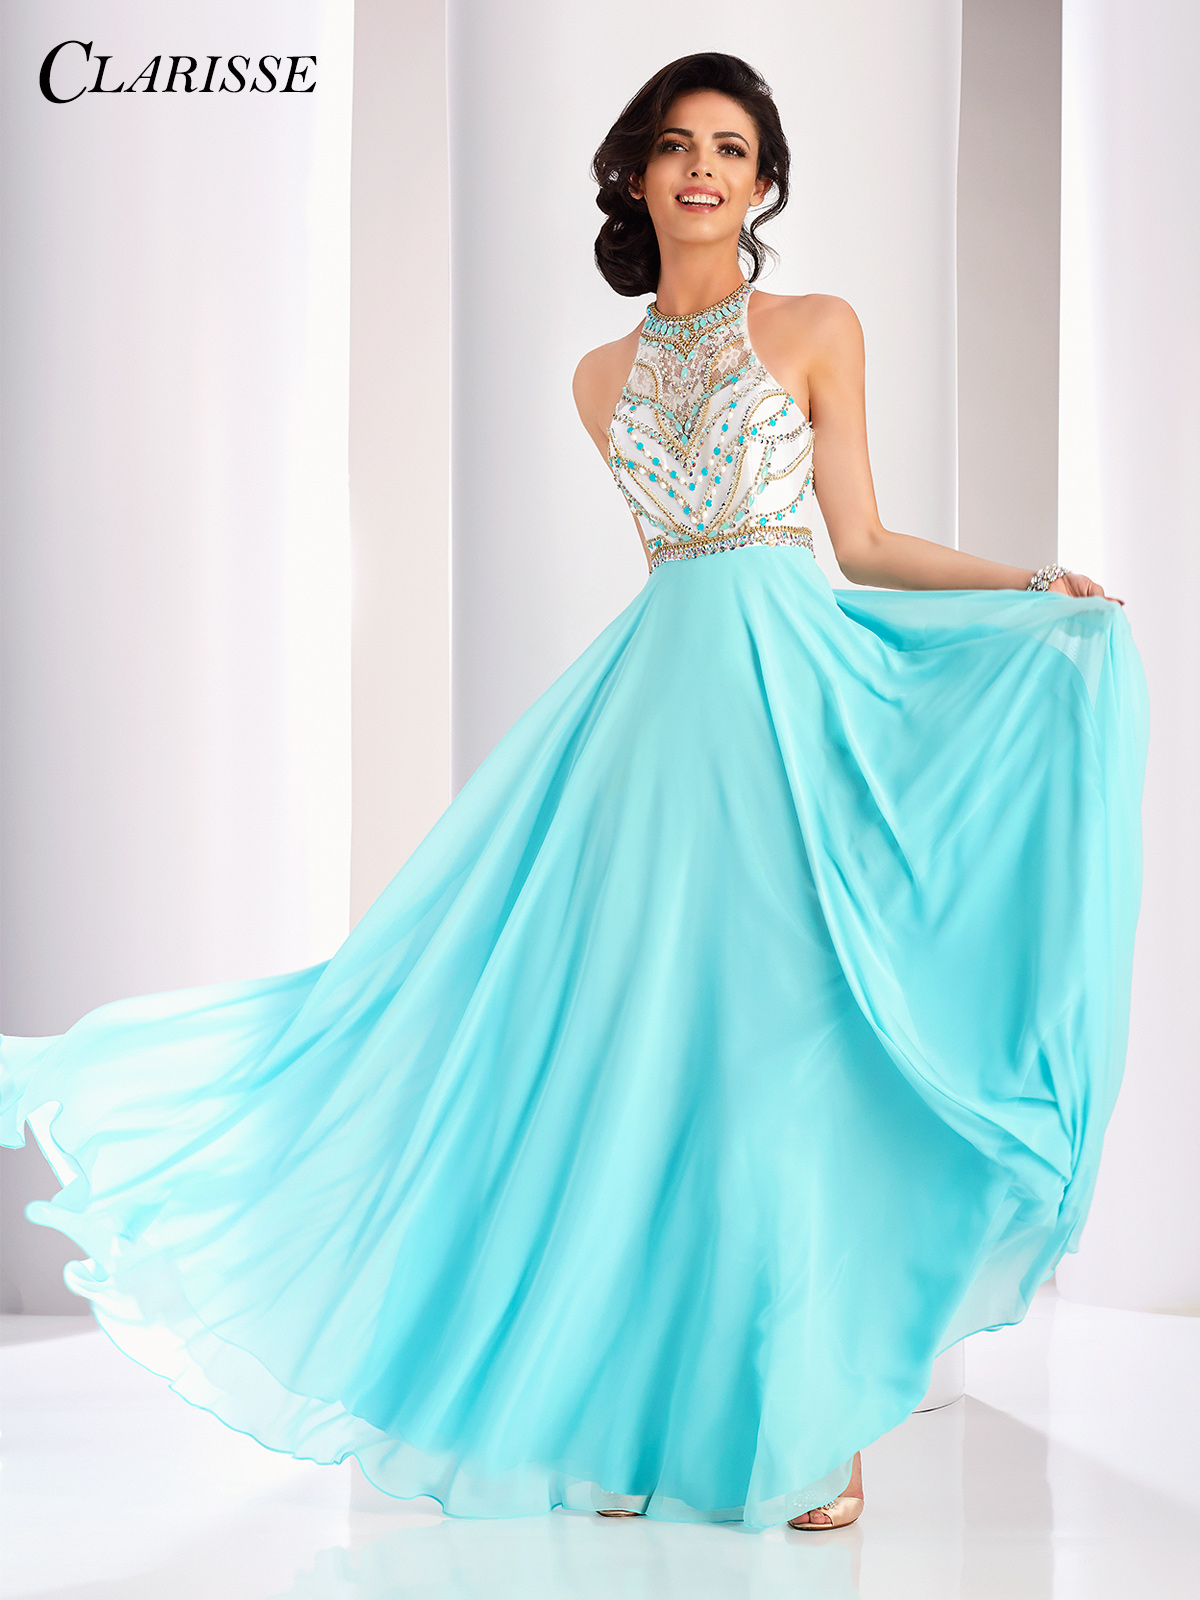 Top Colors and Styles for Prom 2018 | Prom dresses and gowns